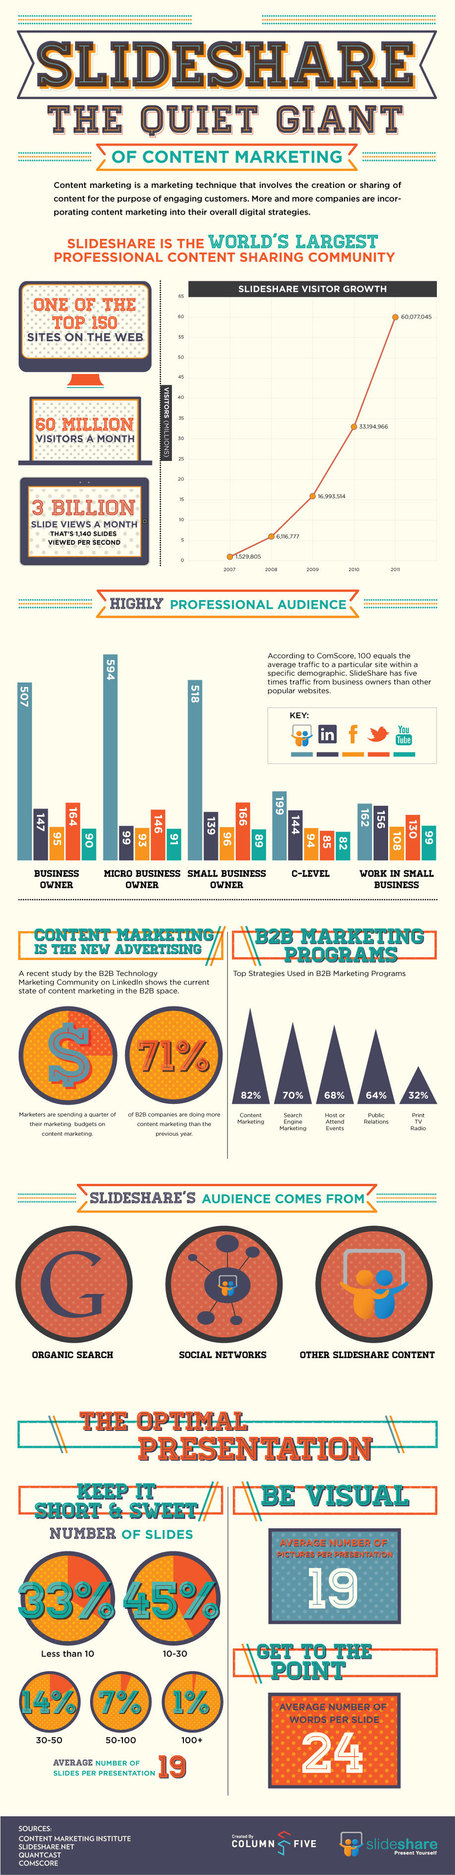 Slideshare Infographic: The Quiet Giant of Content Marketing | Managing options | Scoop.it